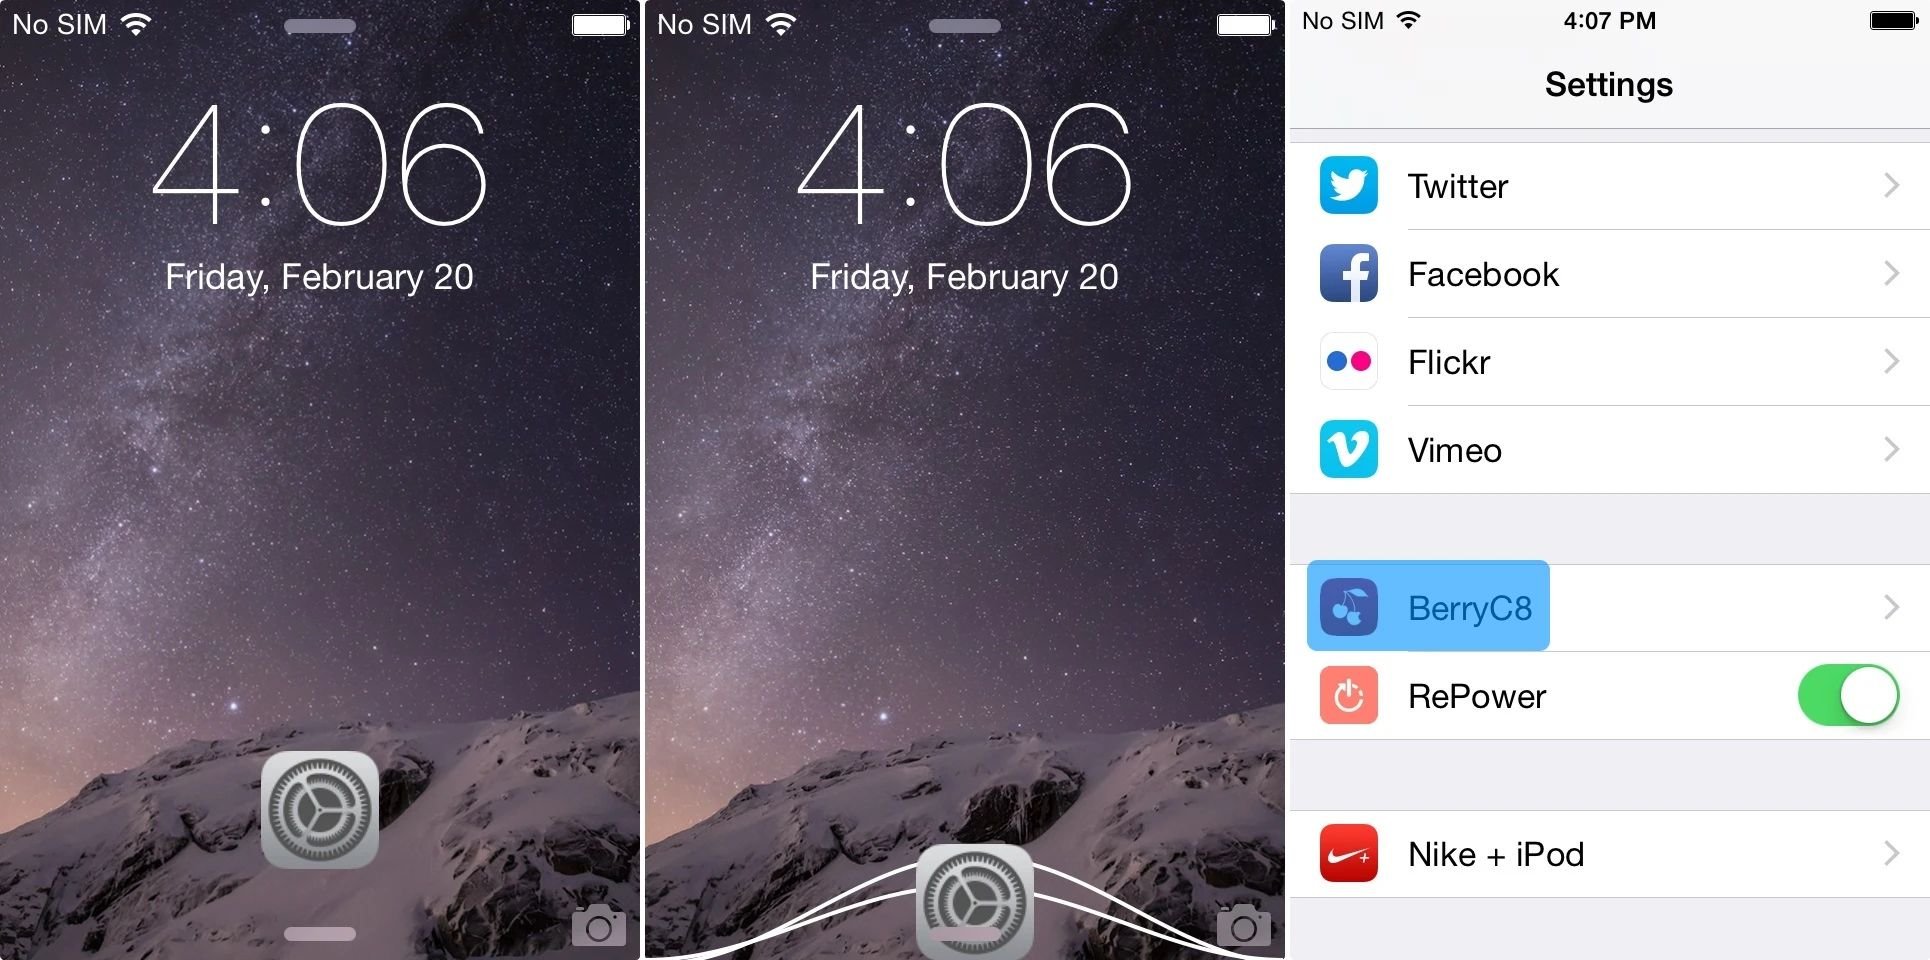 How To Add App Shortcuts To Your Iphone Ipad Or Ipod Touch S Lockscreen  Jailbreak Download